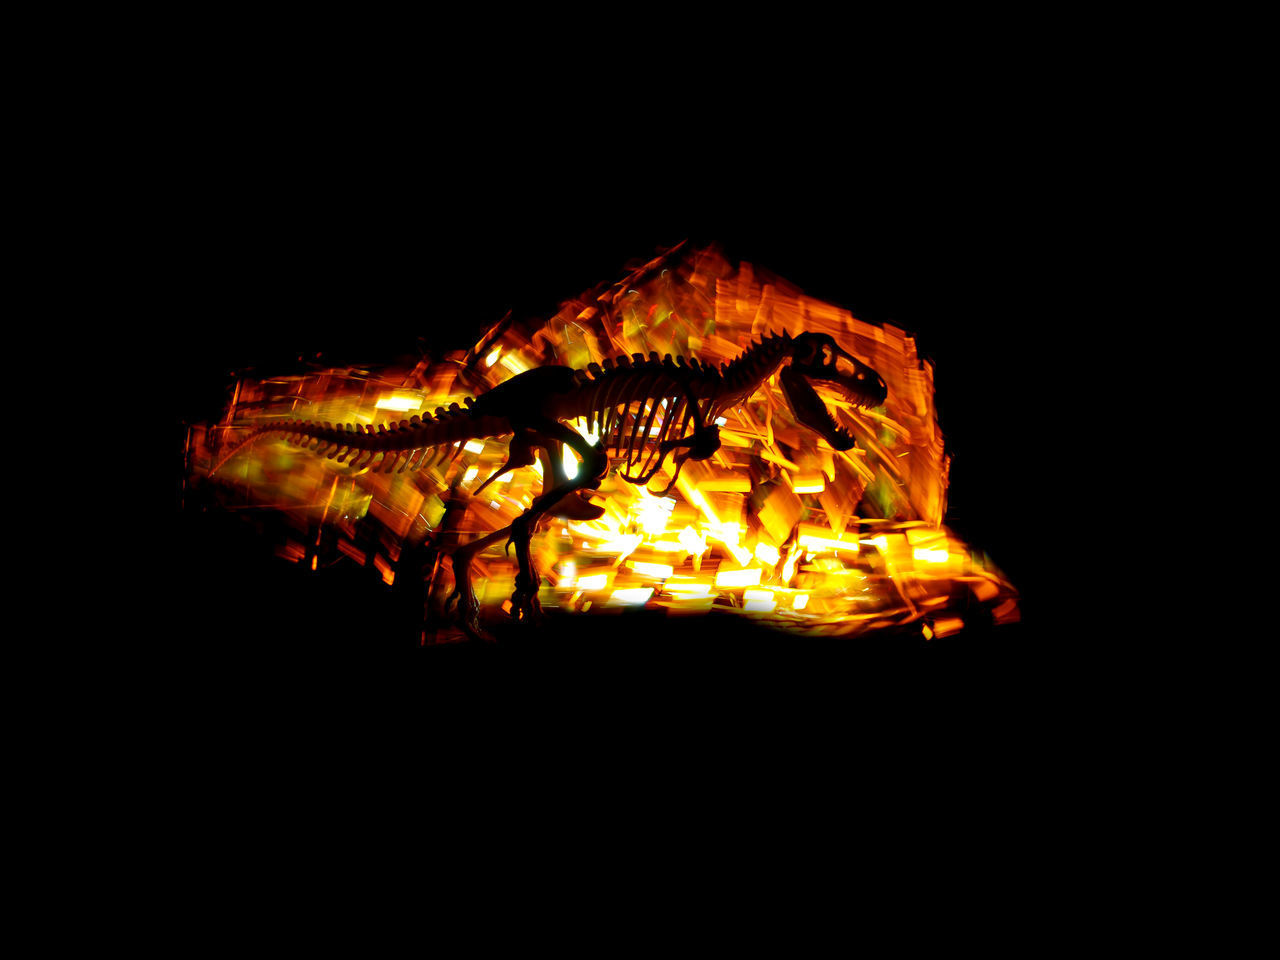 night, orange color, copy space, burning, heat - temperature, flame, fire, illuminated, no people, fire - natural phenomenon, dark, glowing, motion, nature, studio shot, black background, close-up, outdoors, wood - material, log, bonfire